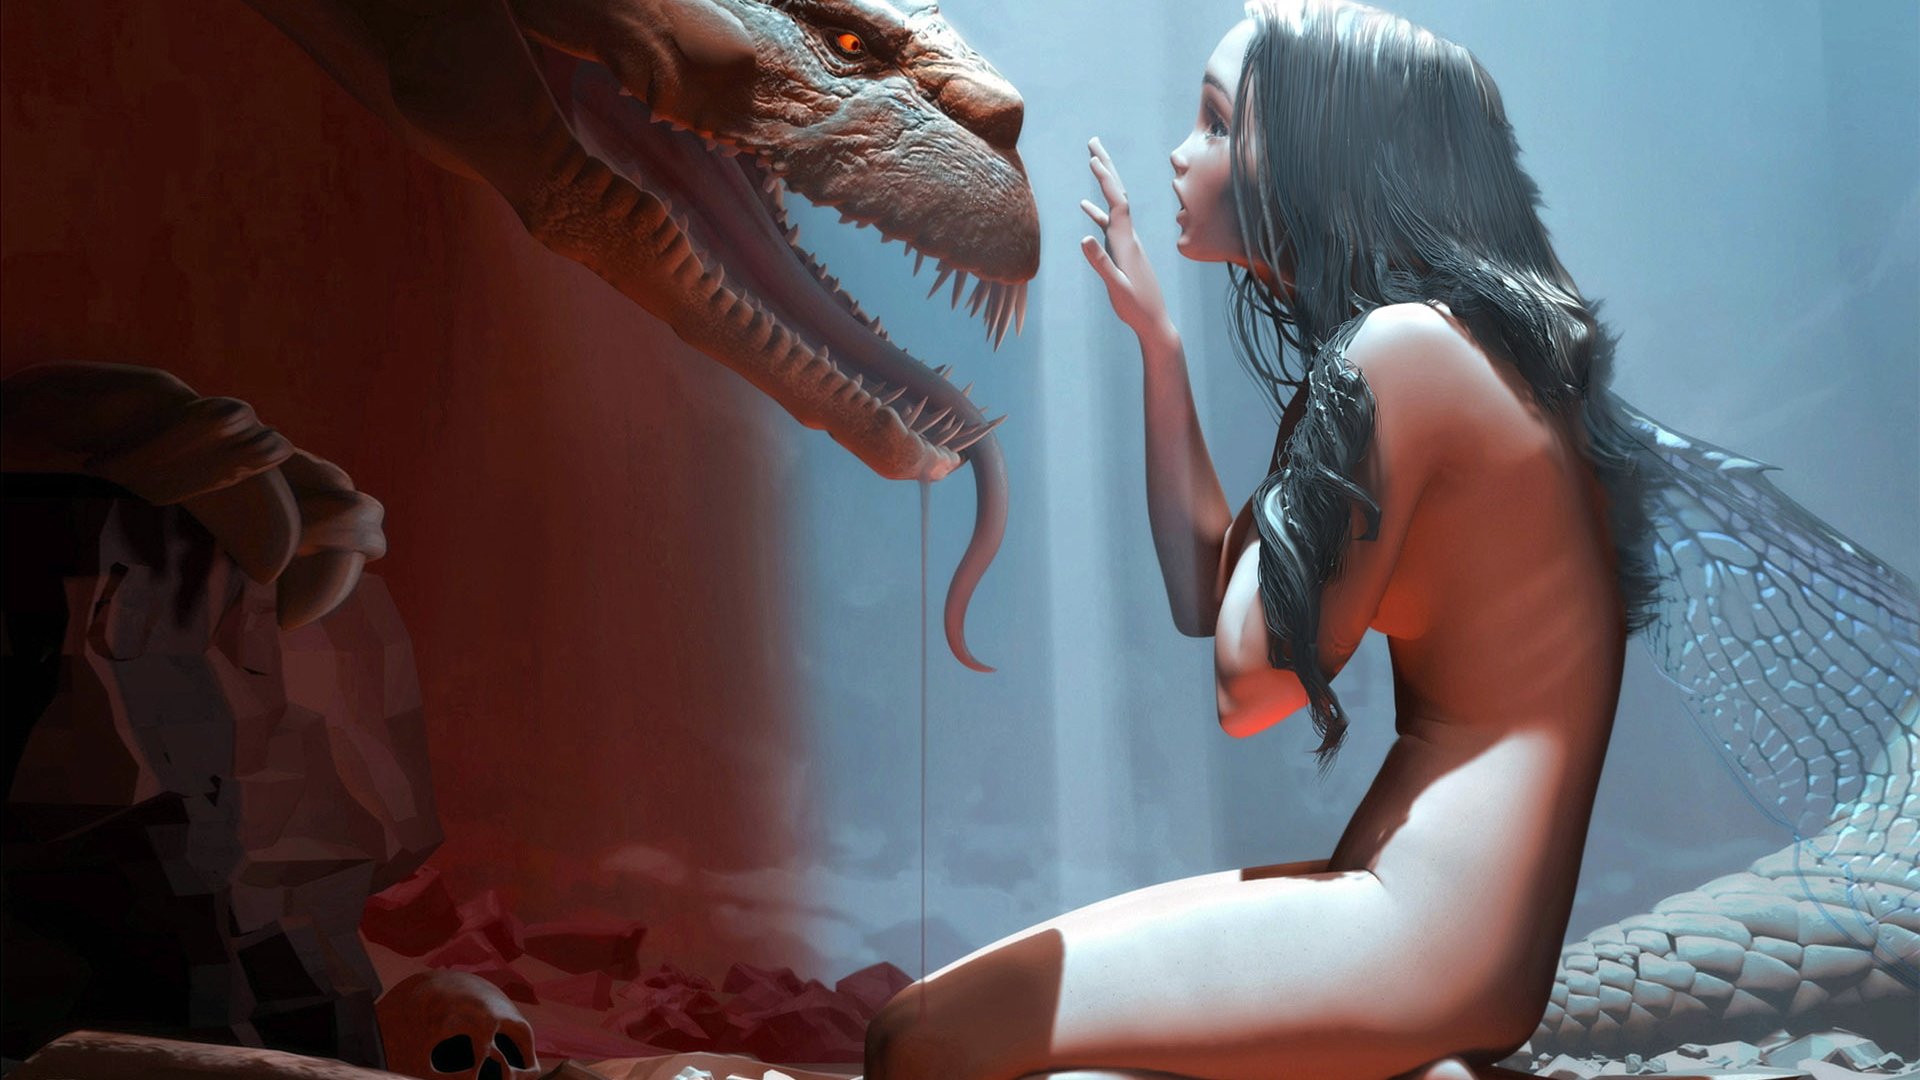 Monster naked girls wallpaper porn scene